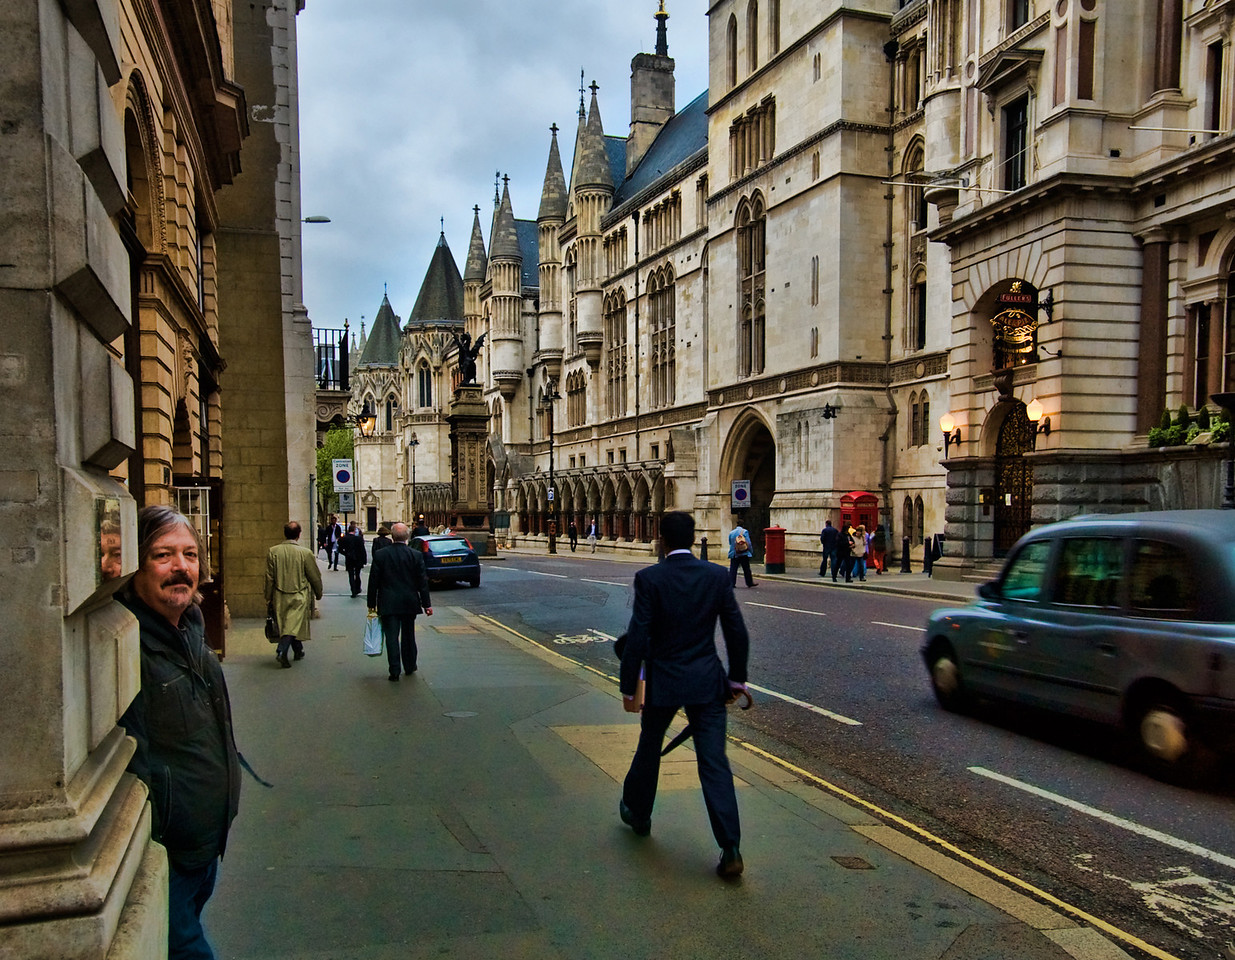 Minister of Funny Walks on Fleet Street. Dig the cool parapets.